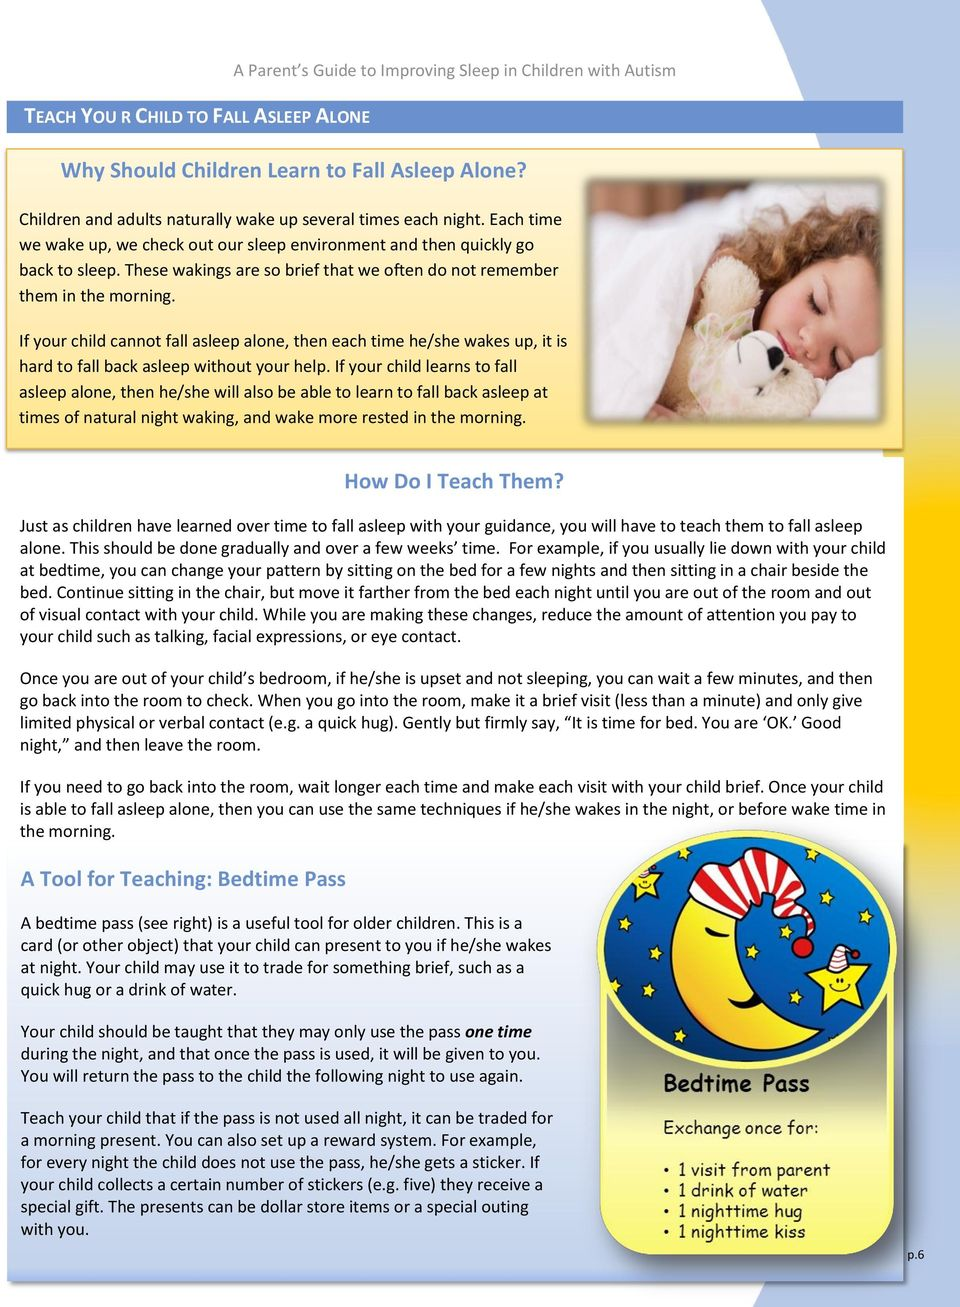 These wakings are so brief that we often do not remember them in the morning. If your child cannot fall asleep alone, then each time he/she wakes up, it is hard to fall back asleep without your help.